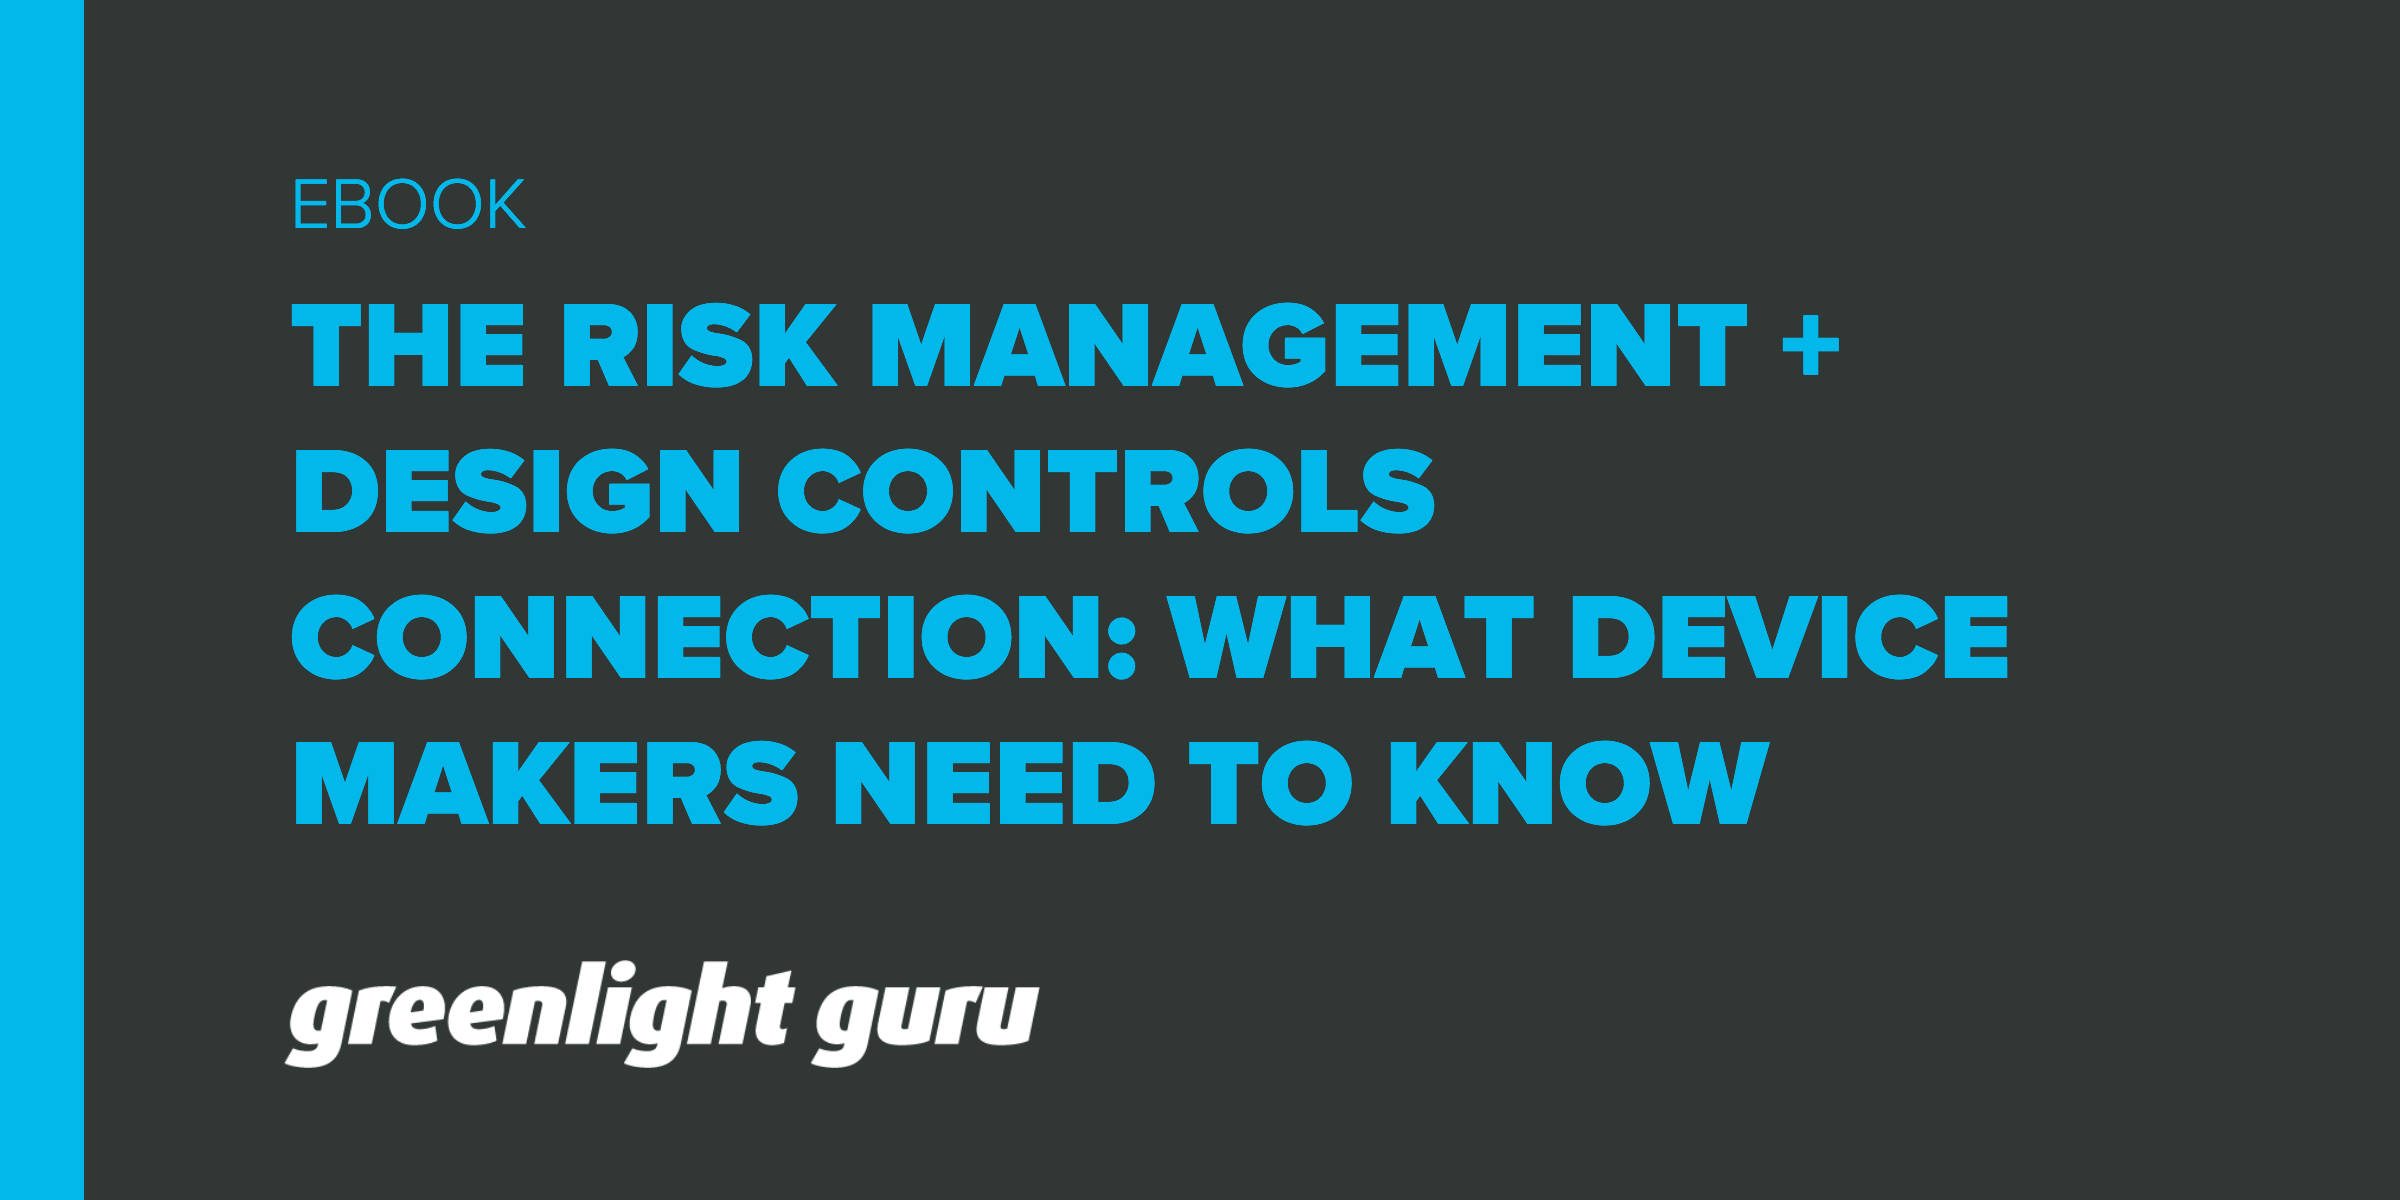 The Risk Management + Design Controls Connection: What Device Makers Need To Know